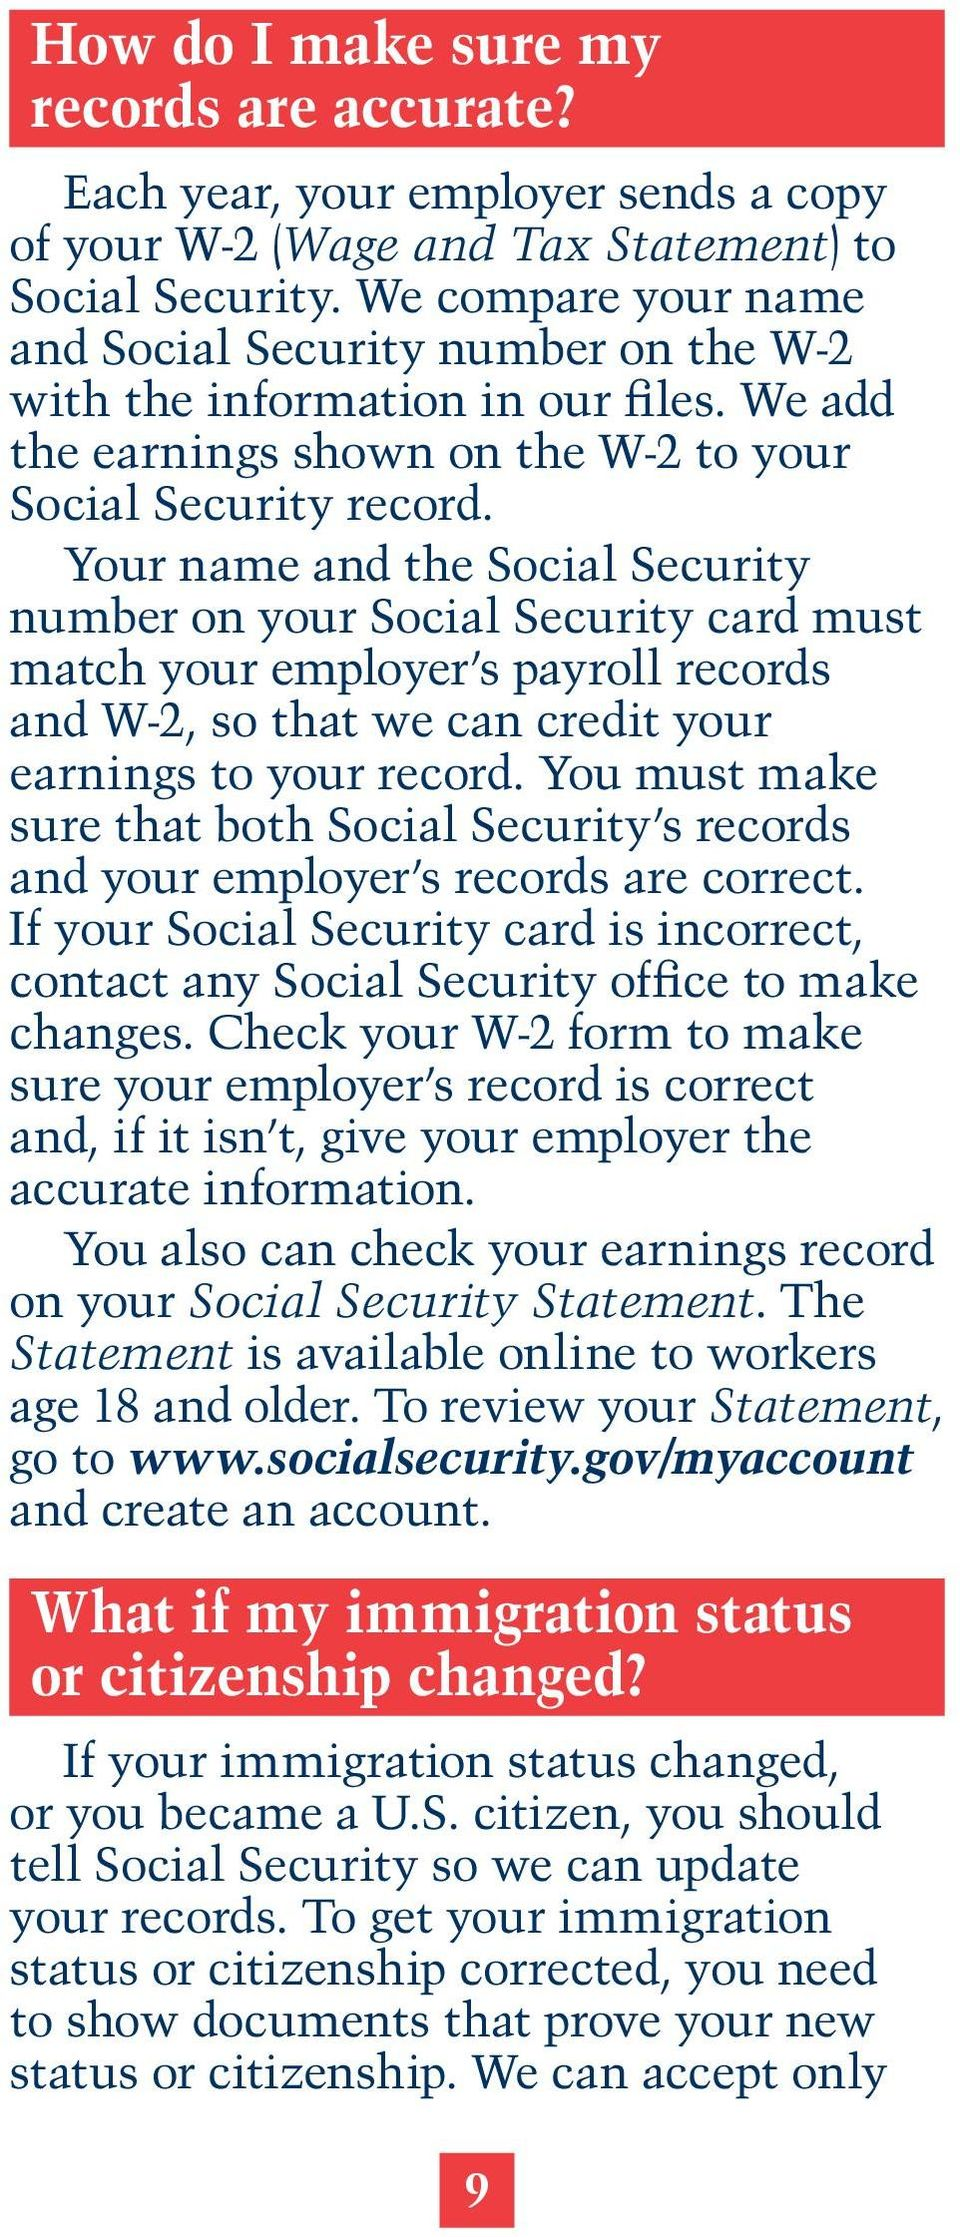 Your name and the Social Security number on your Social Security card must match your employer s payroll records and W-2, so that we can credit your earnings to your record.